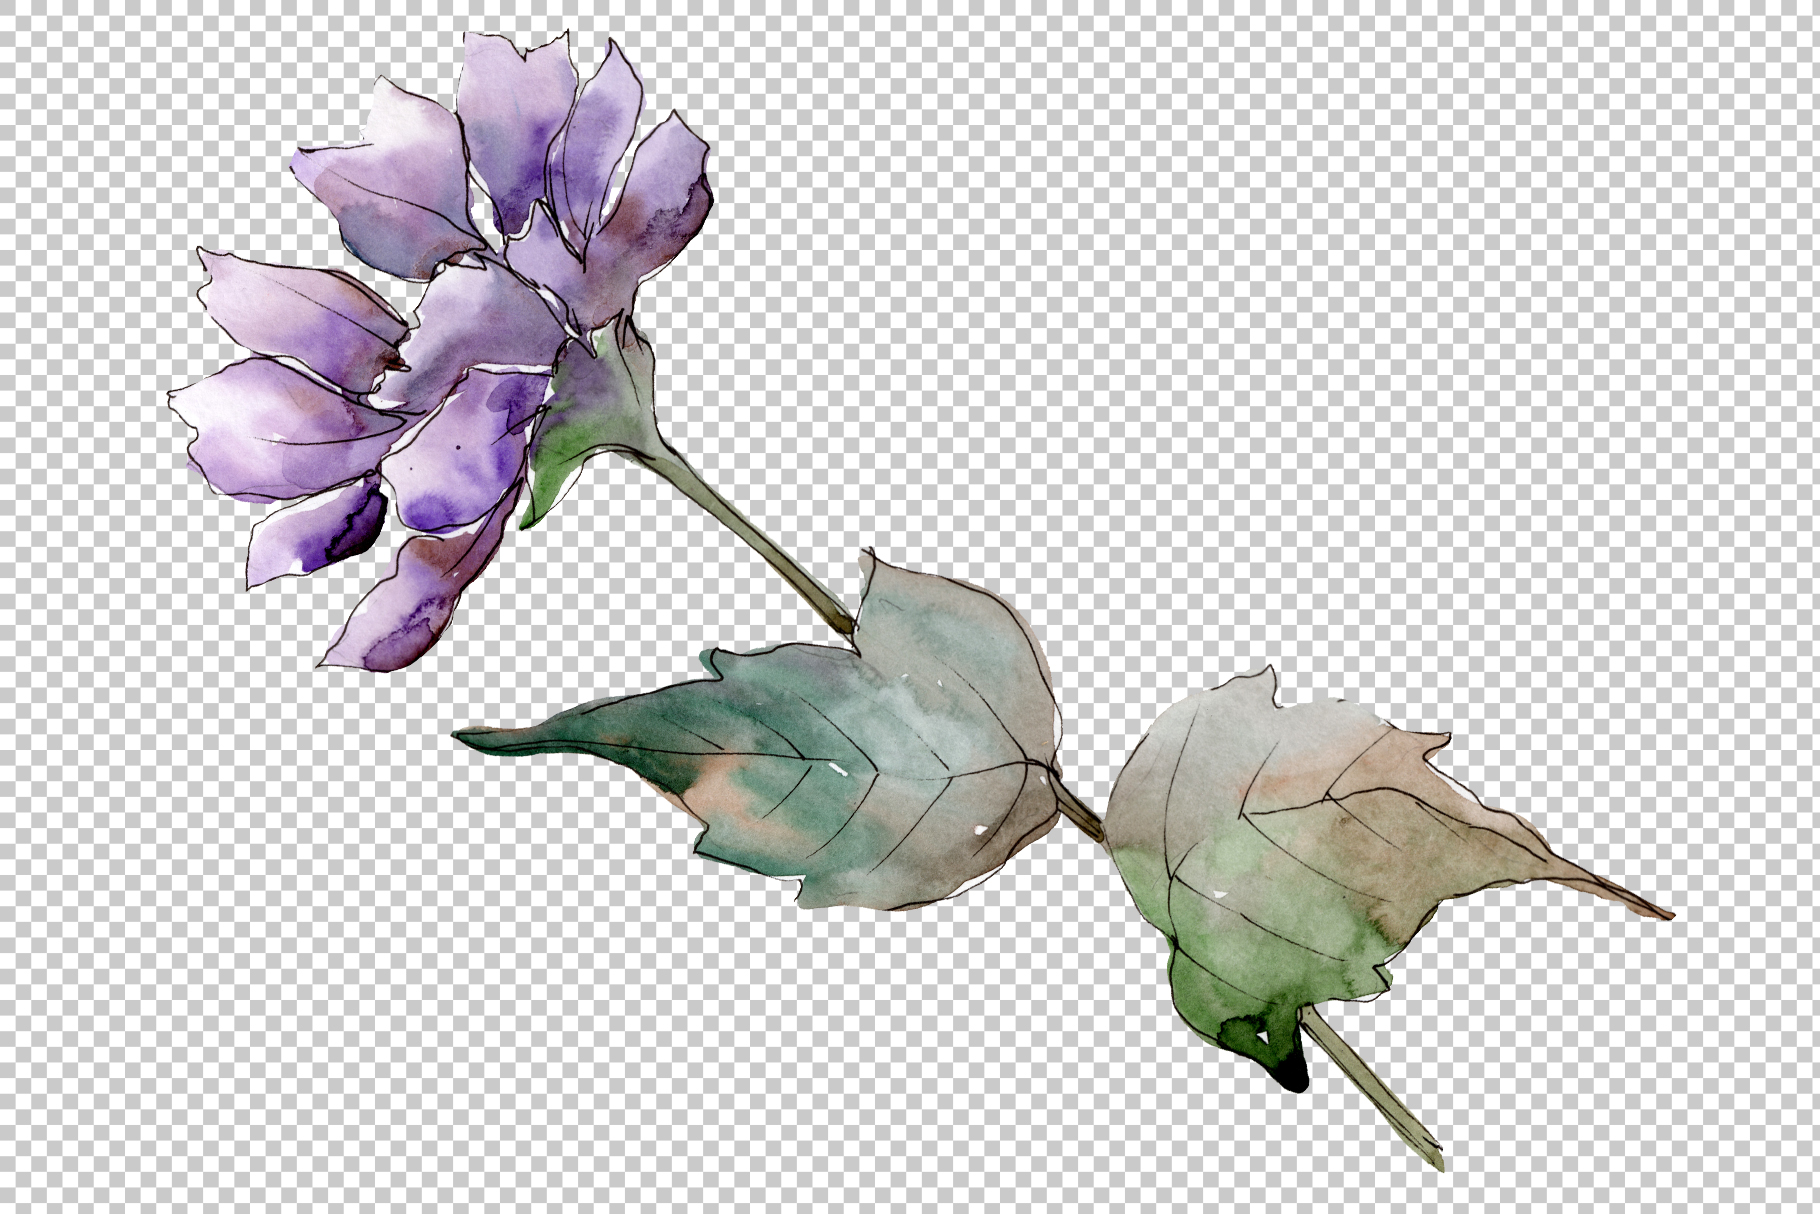 Delicate flower daisy watercolor png example image 2